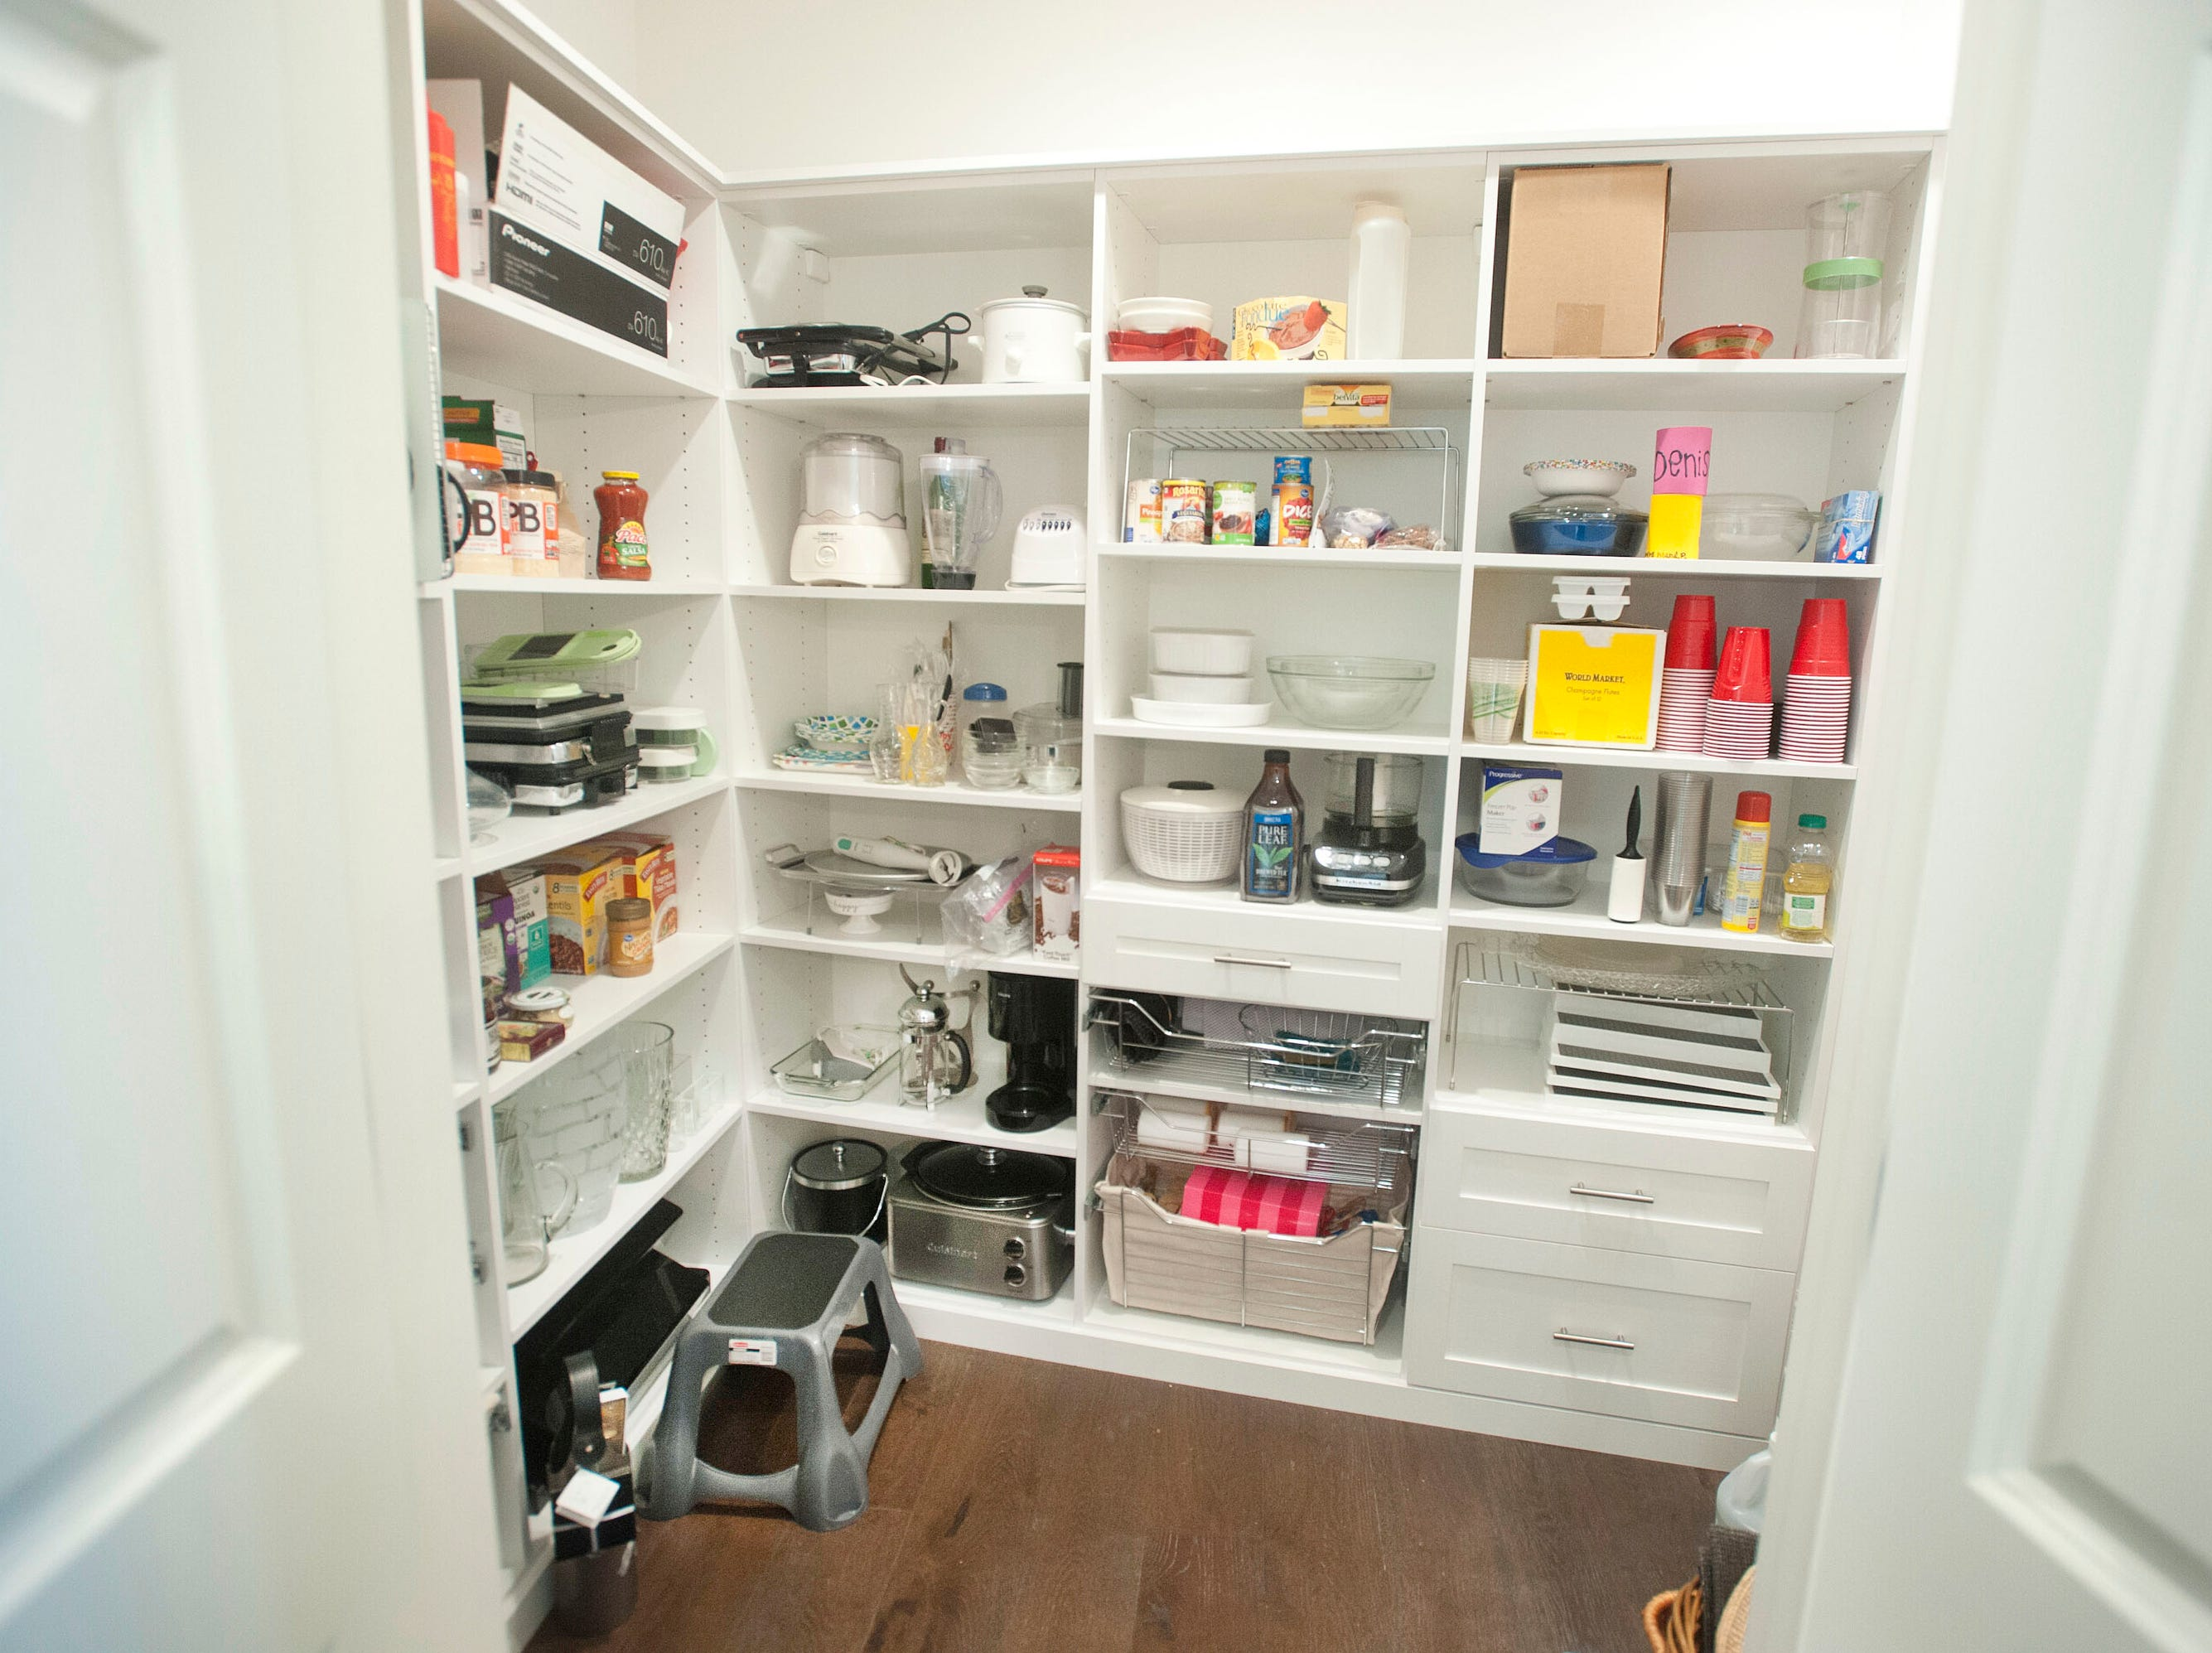 The kitchen pantry in the condominium of Denise Puthuff.